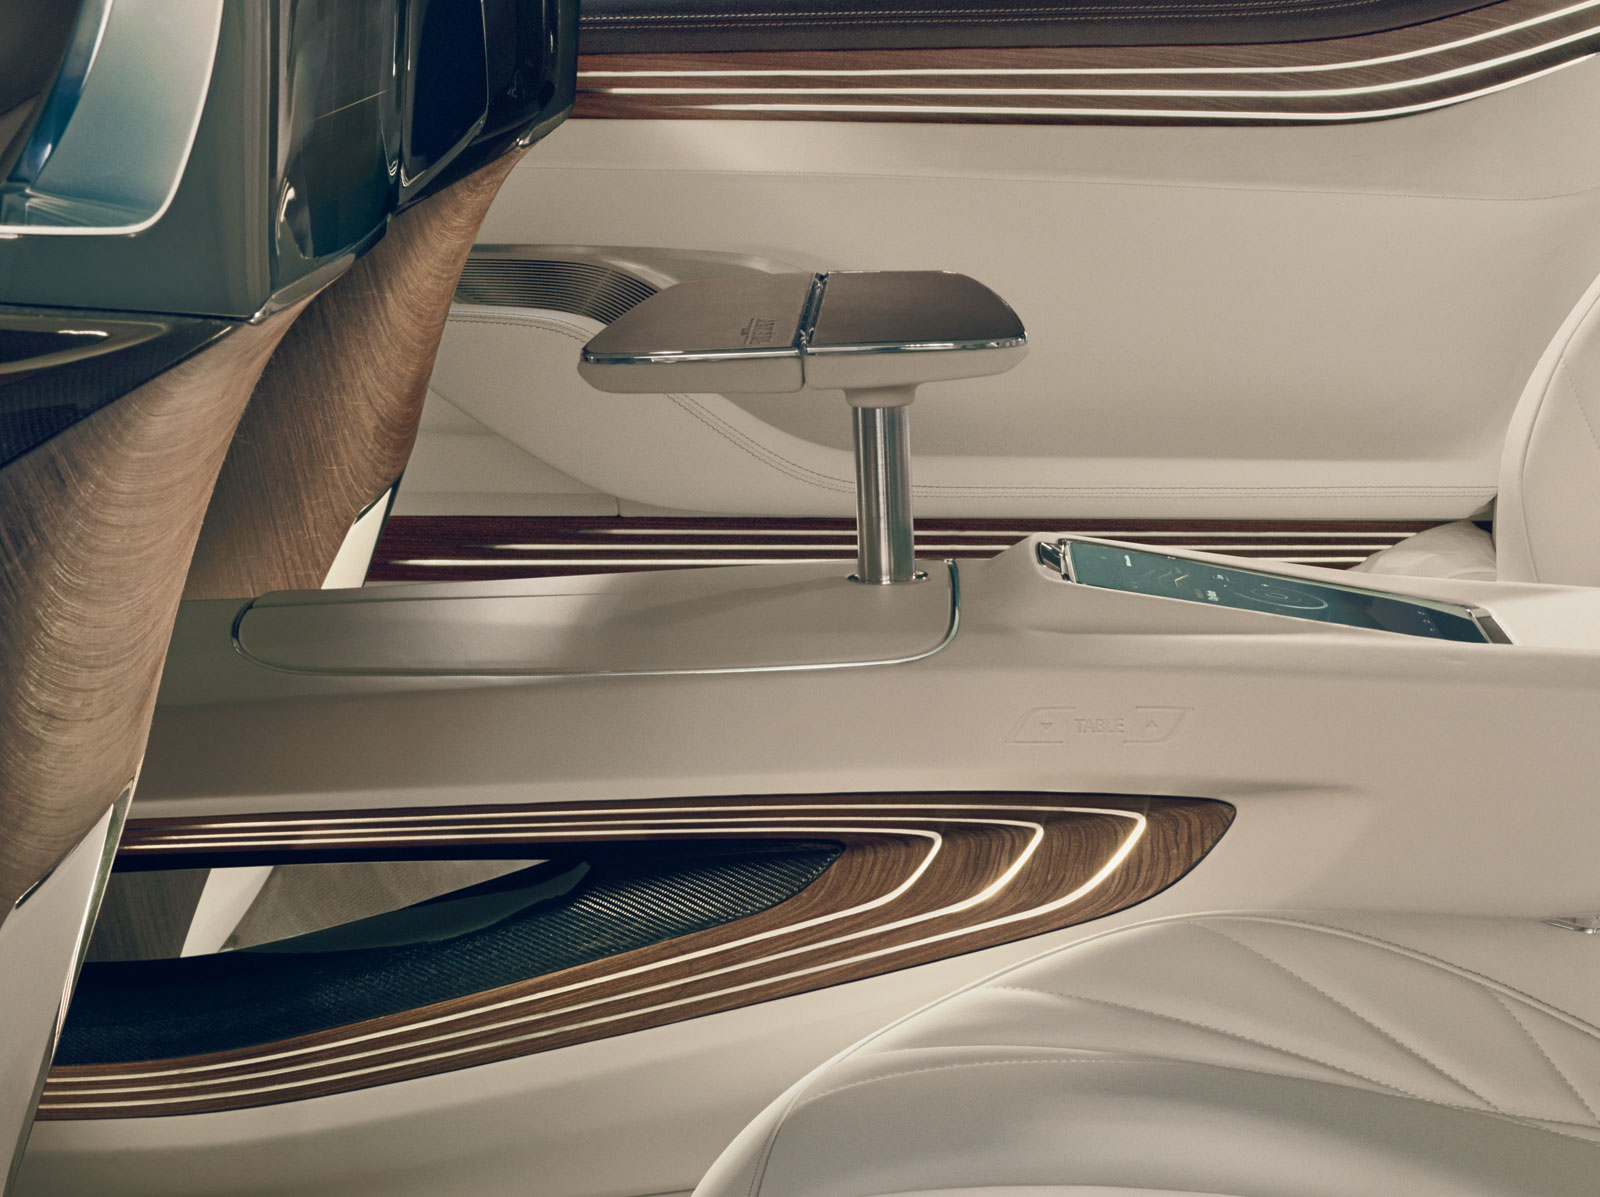 bmw vision future luxury concept interior